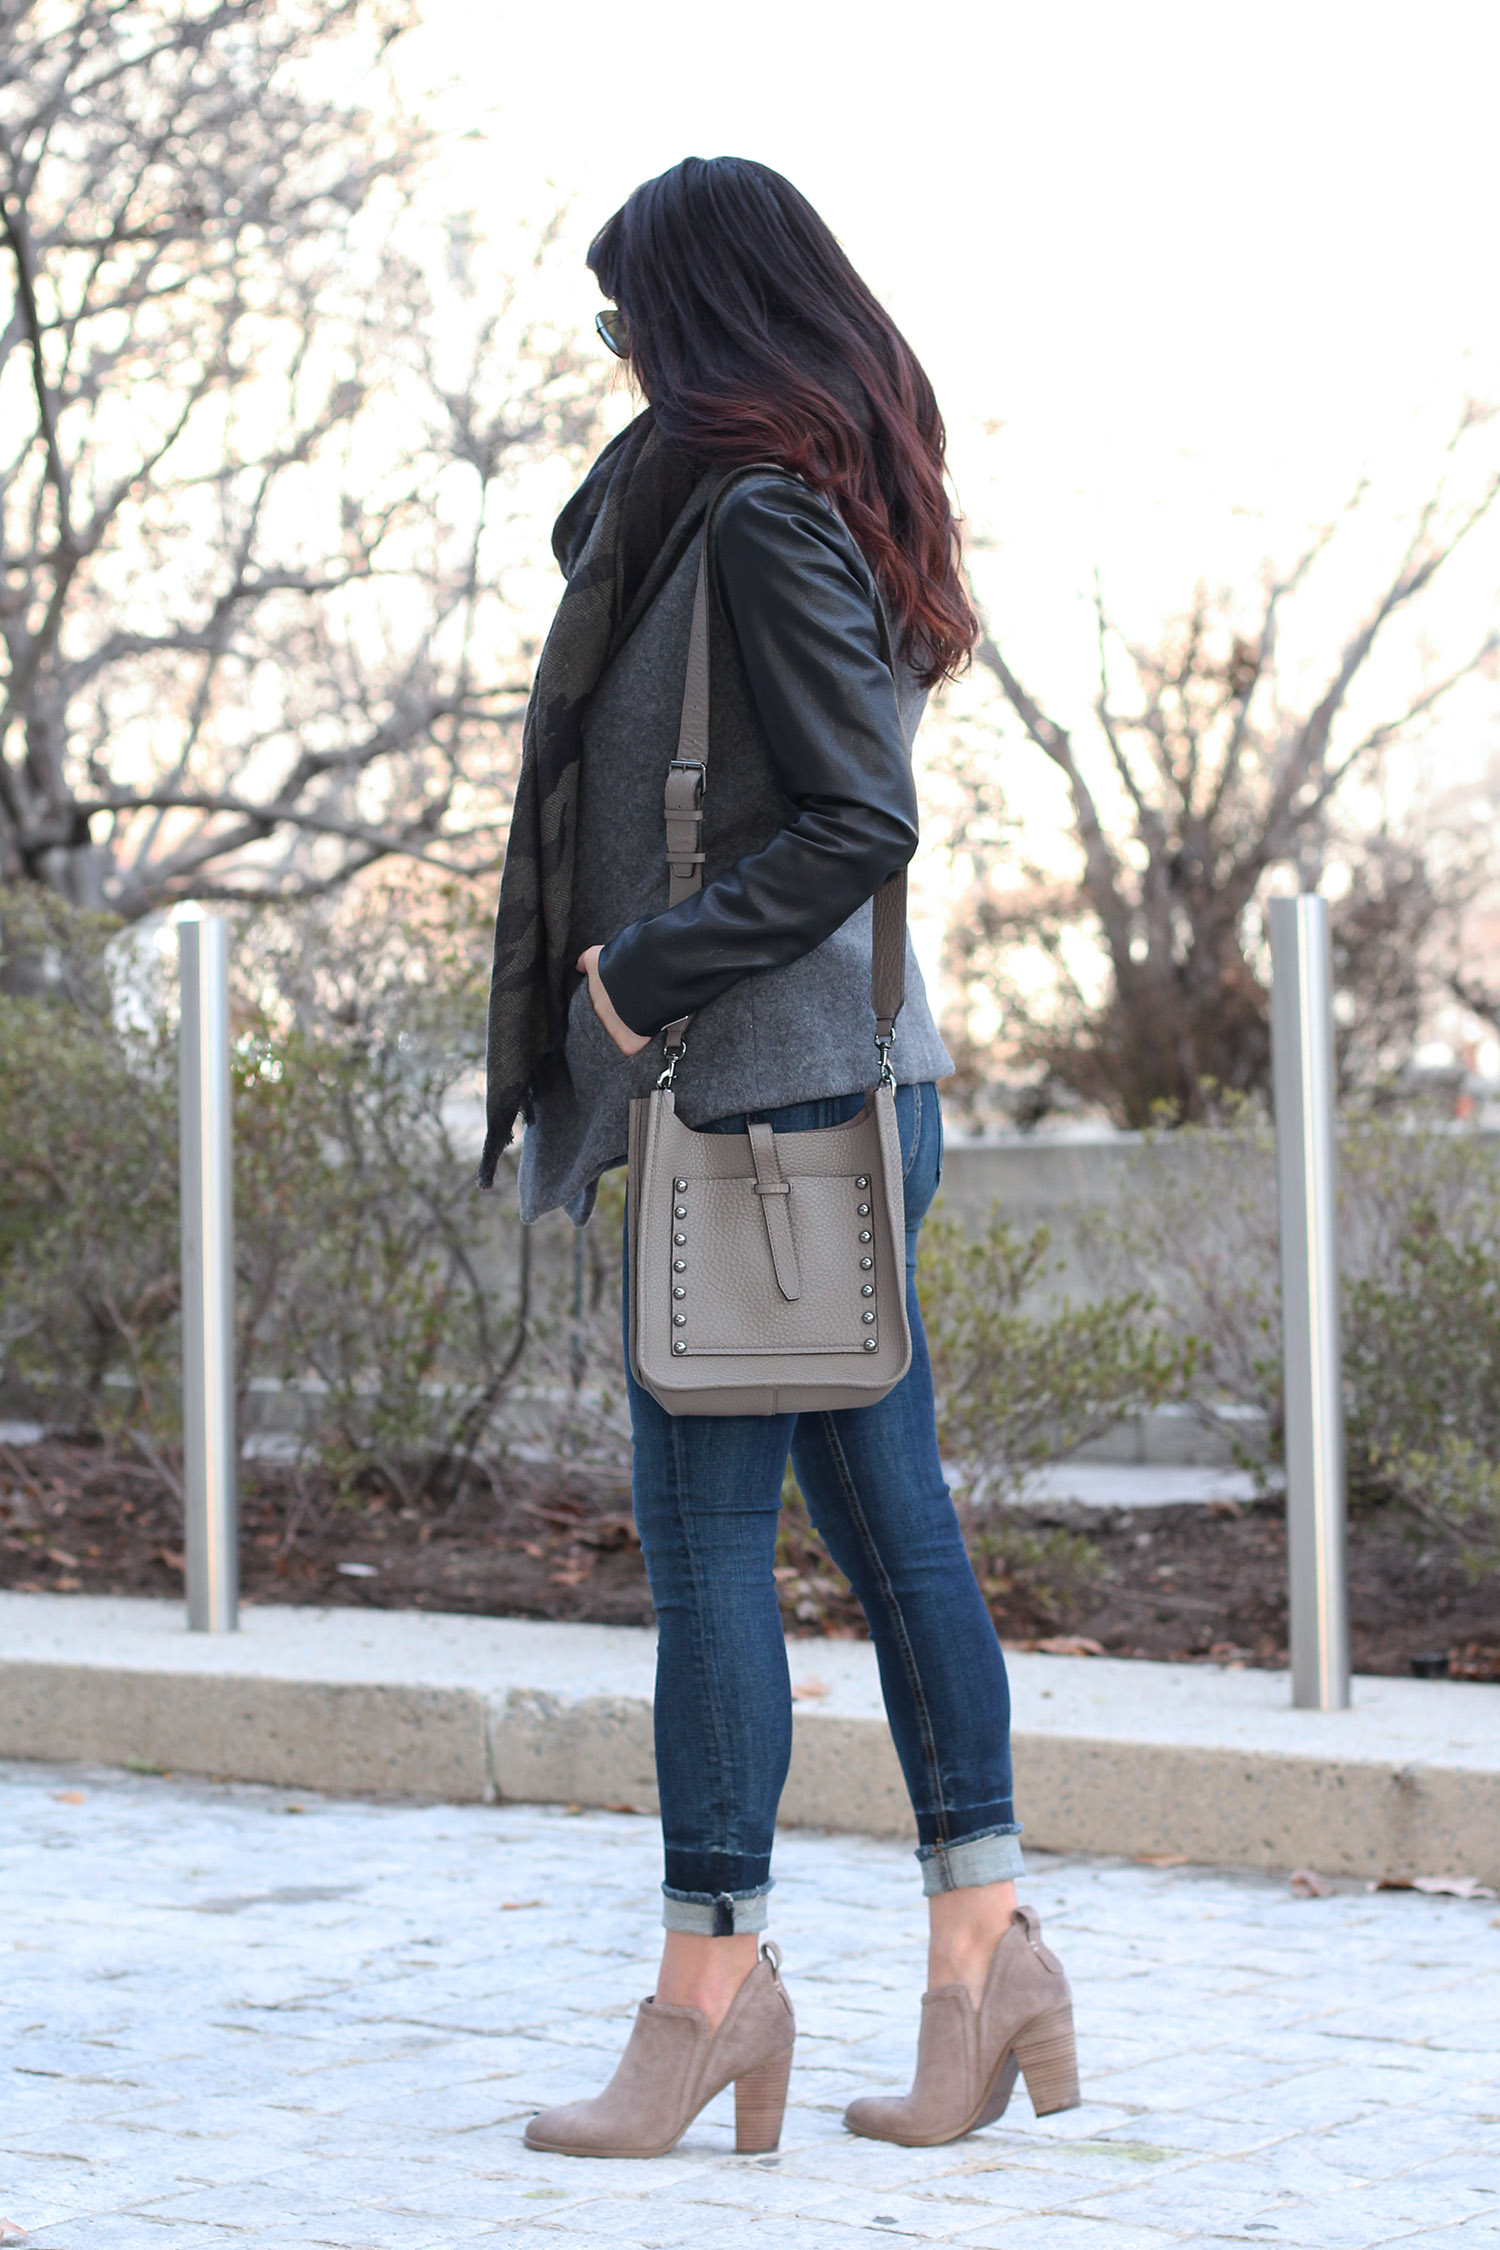 Cute Outfit for Fall; Ankle Boot Outfit